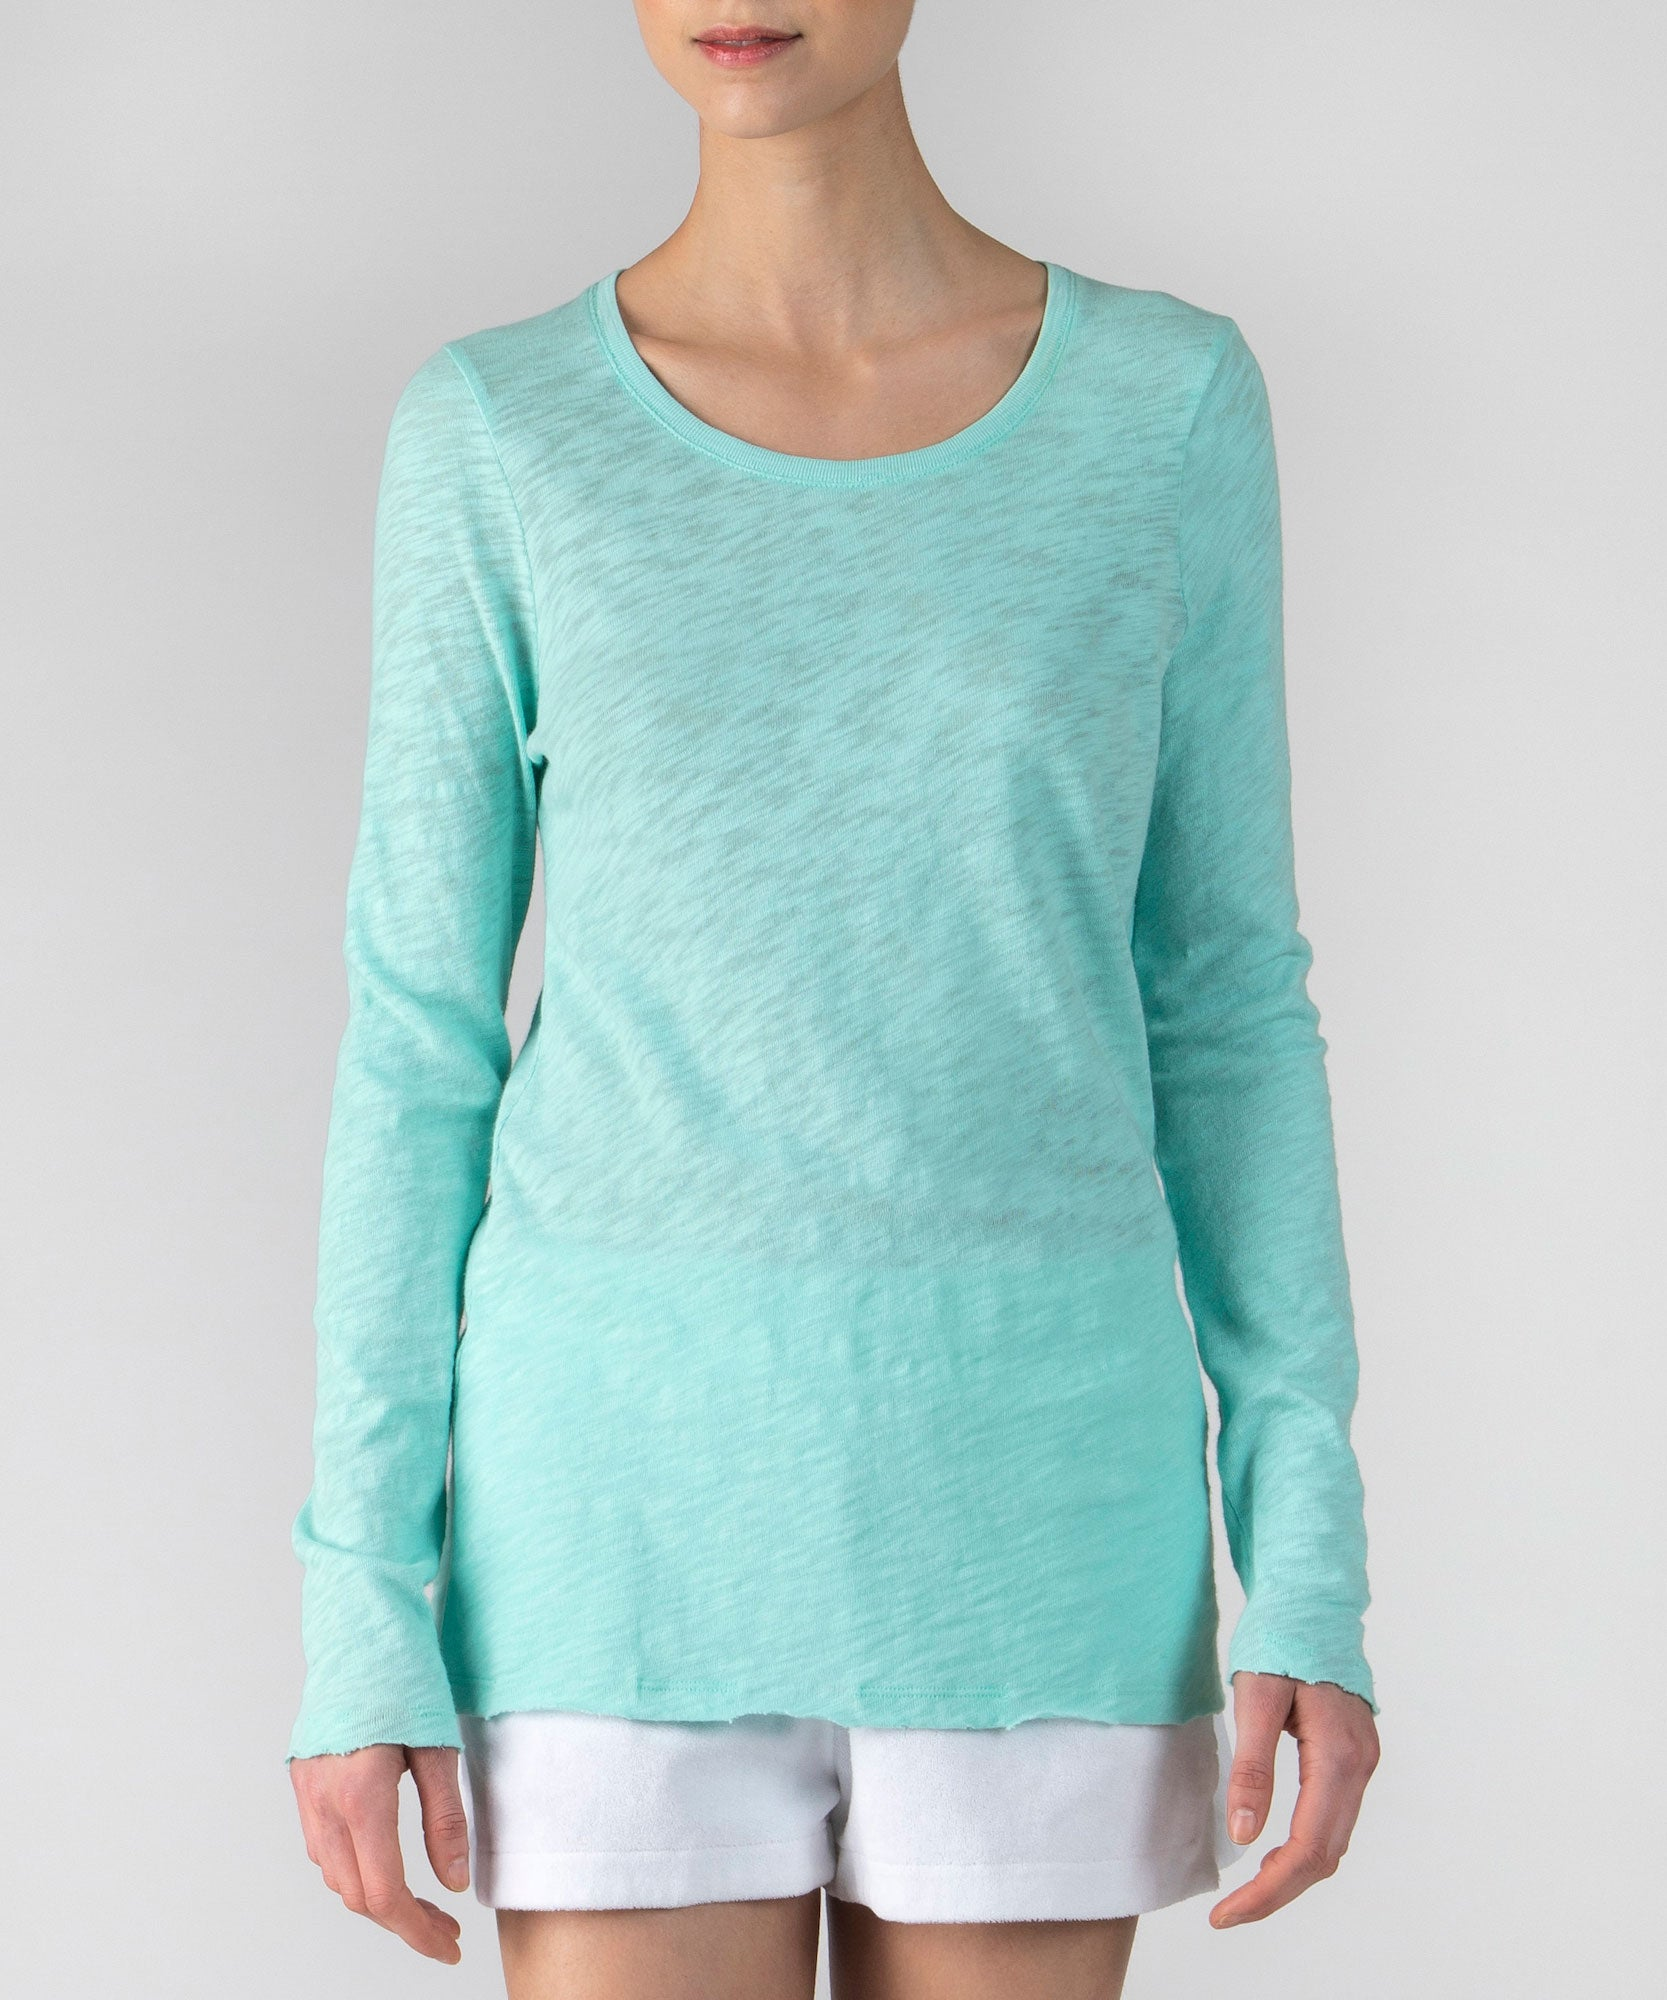 Aqua Slub Jersey Long Sleeve Destroyed Wash Tee - Women's Cotton Long Sleeve Tee by ATM Anthony Thomas Melillo